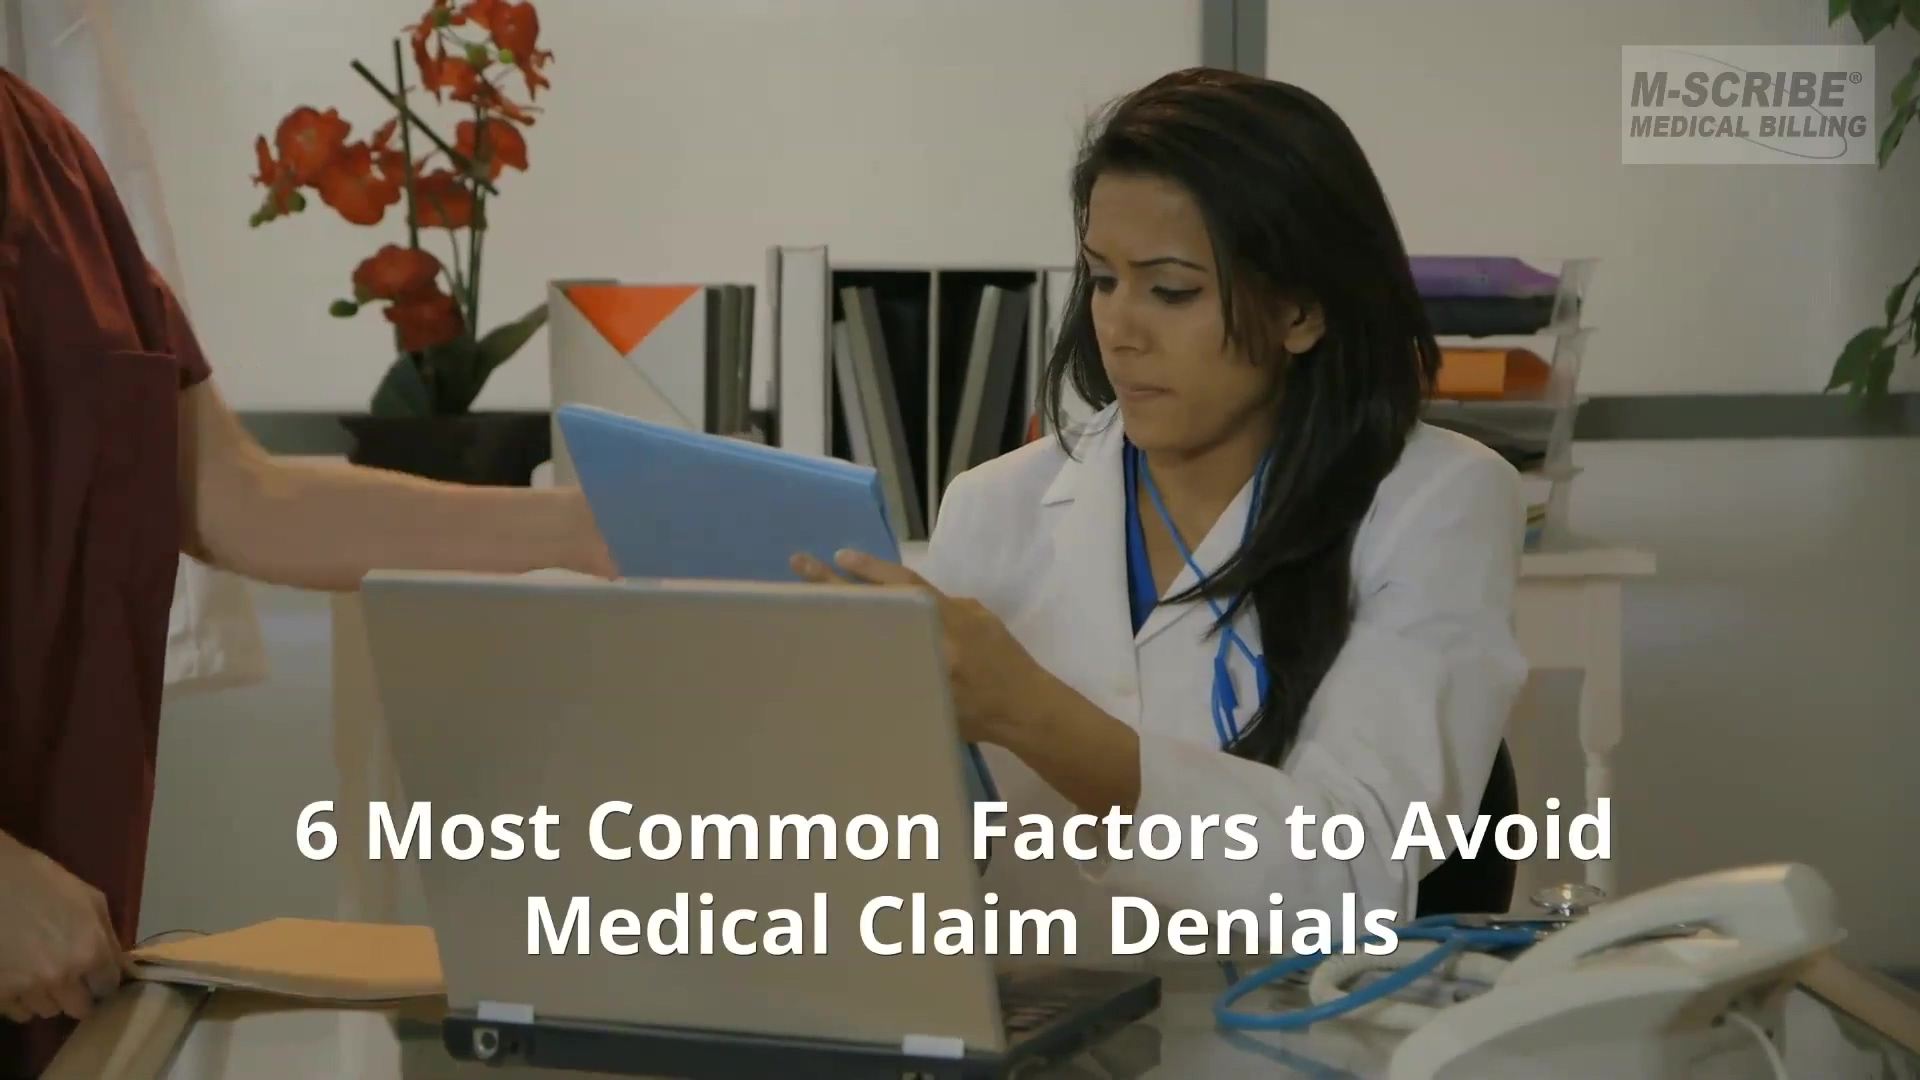 6_Most_Common_Factors_to_Avoid_Medical_C